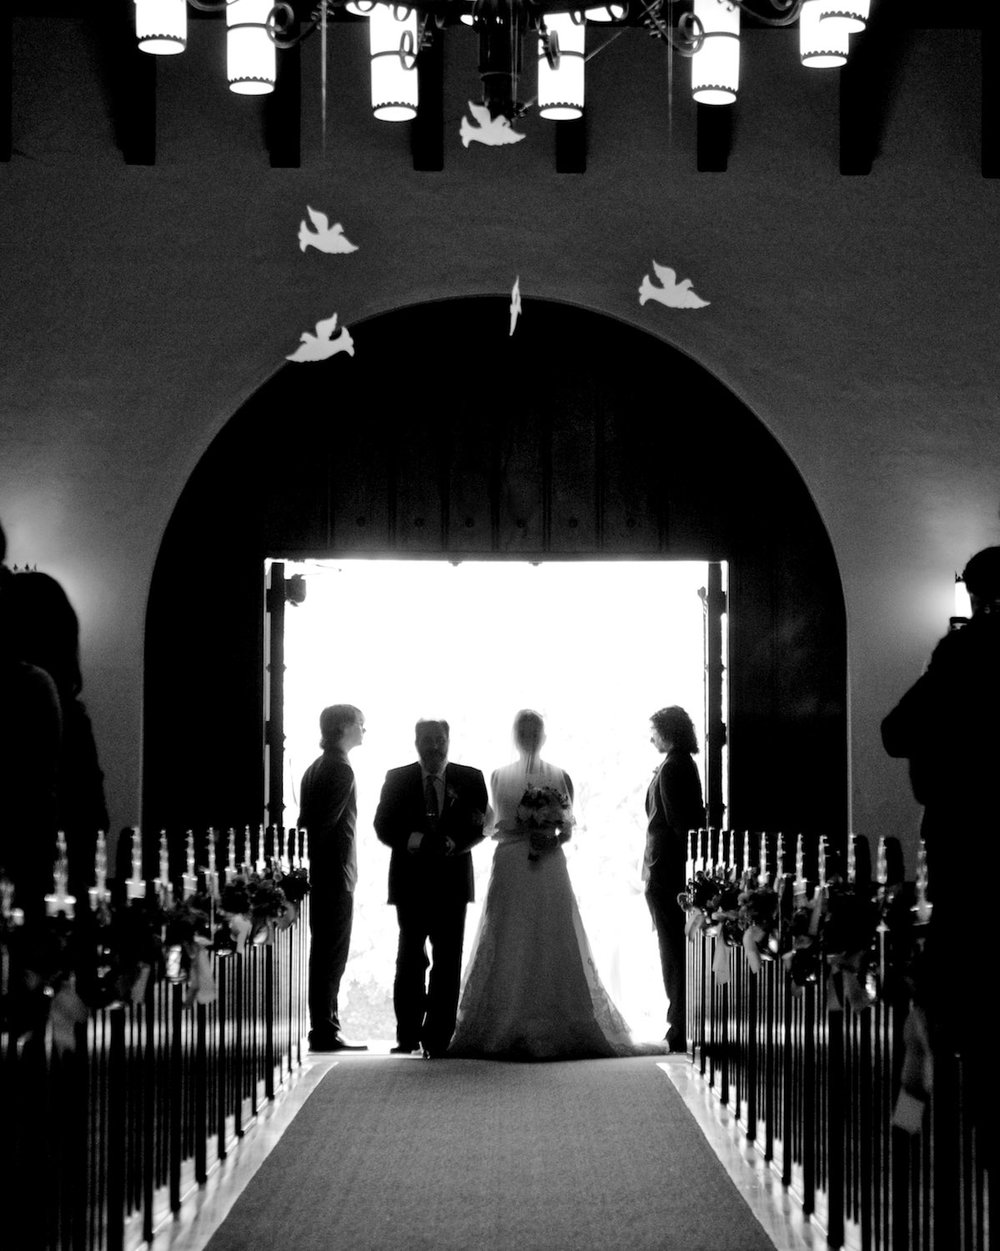 los-angeles-wedding-michal-pfeil-13.jpg